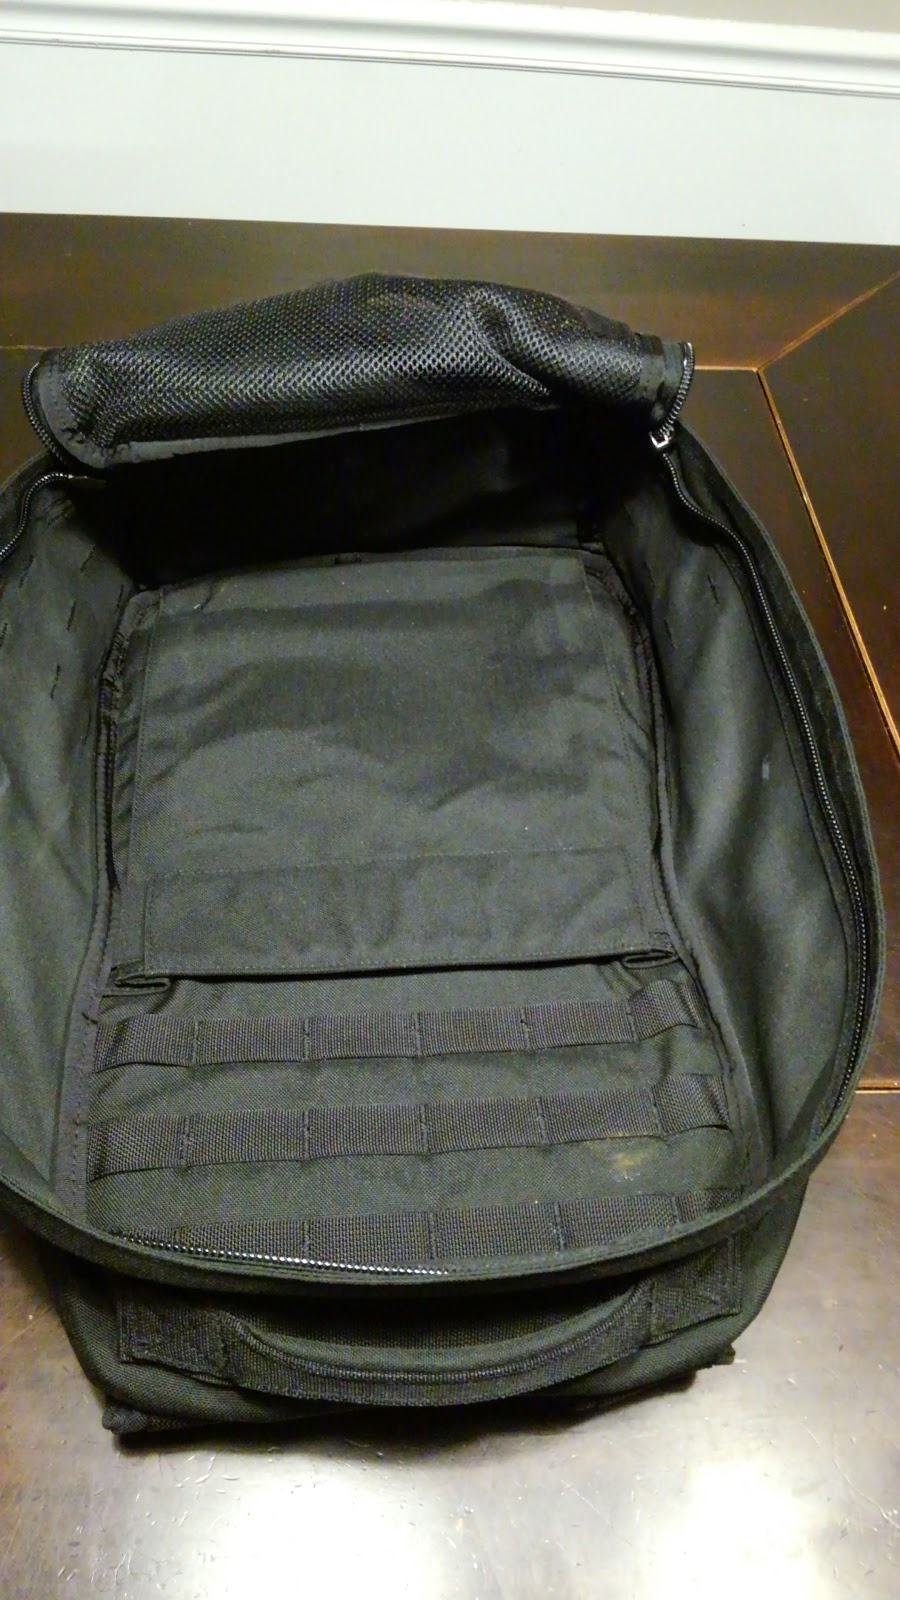 Running Backpack Archives The Run Commuter 6 In 1 Secret Pouch Bag Organiser Bgo 15 There Is An Elasticized On Back Of Which Will Hold 3 Nalgene Bottles Side By Perfectly